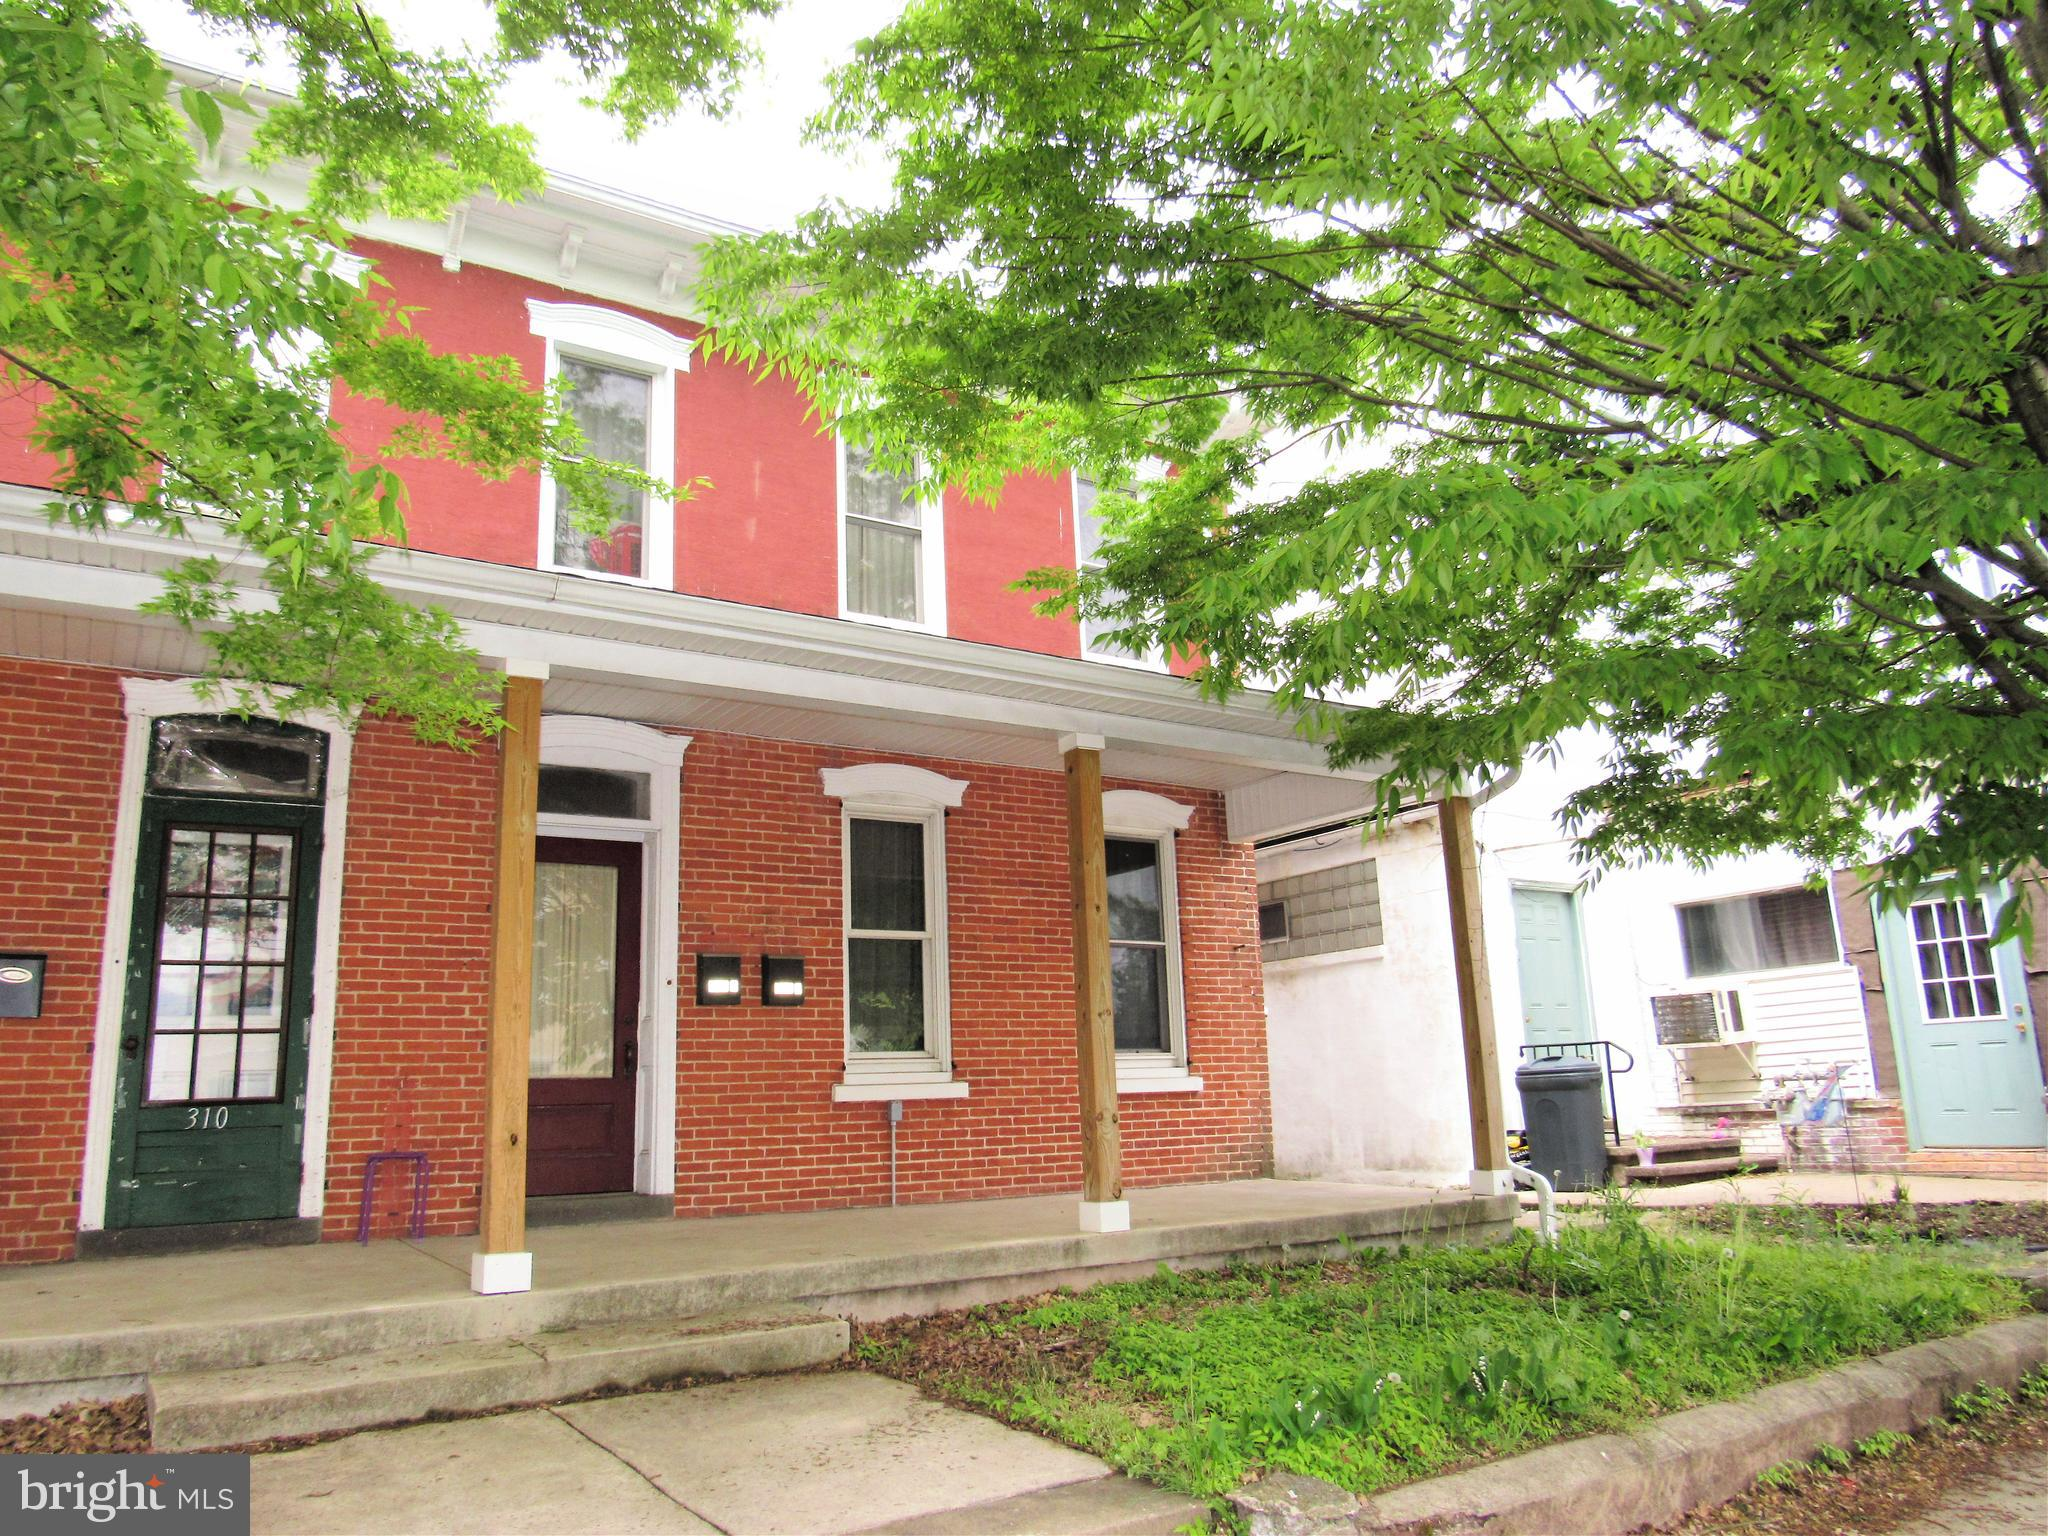 Twin duplex in very good condition which has seen many updates.   Great opportunity to live in one unit and have the other help with expenses.  Tenants pay electric and heat.  Both units are very spacious with two bedrooms.  First floor has access to the basement for storage, front and rear entrance.  Second/third floor unit has rear deck with stairs accessing rear yard.  Both units have laundry hookups.  Nice yard and rear parking for 3 cars.  First floor rent $800/month.  Second floor rent $950.00/month.  Call for details.